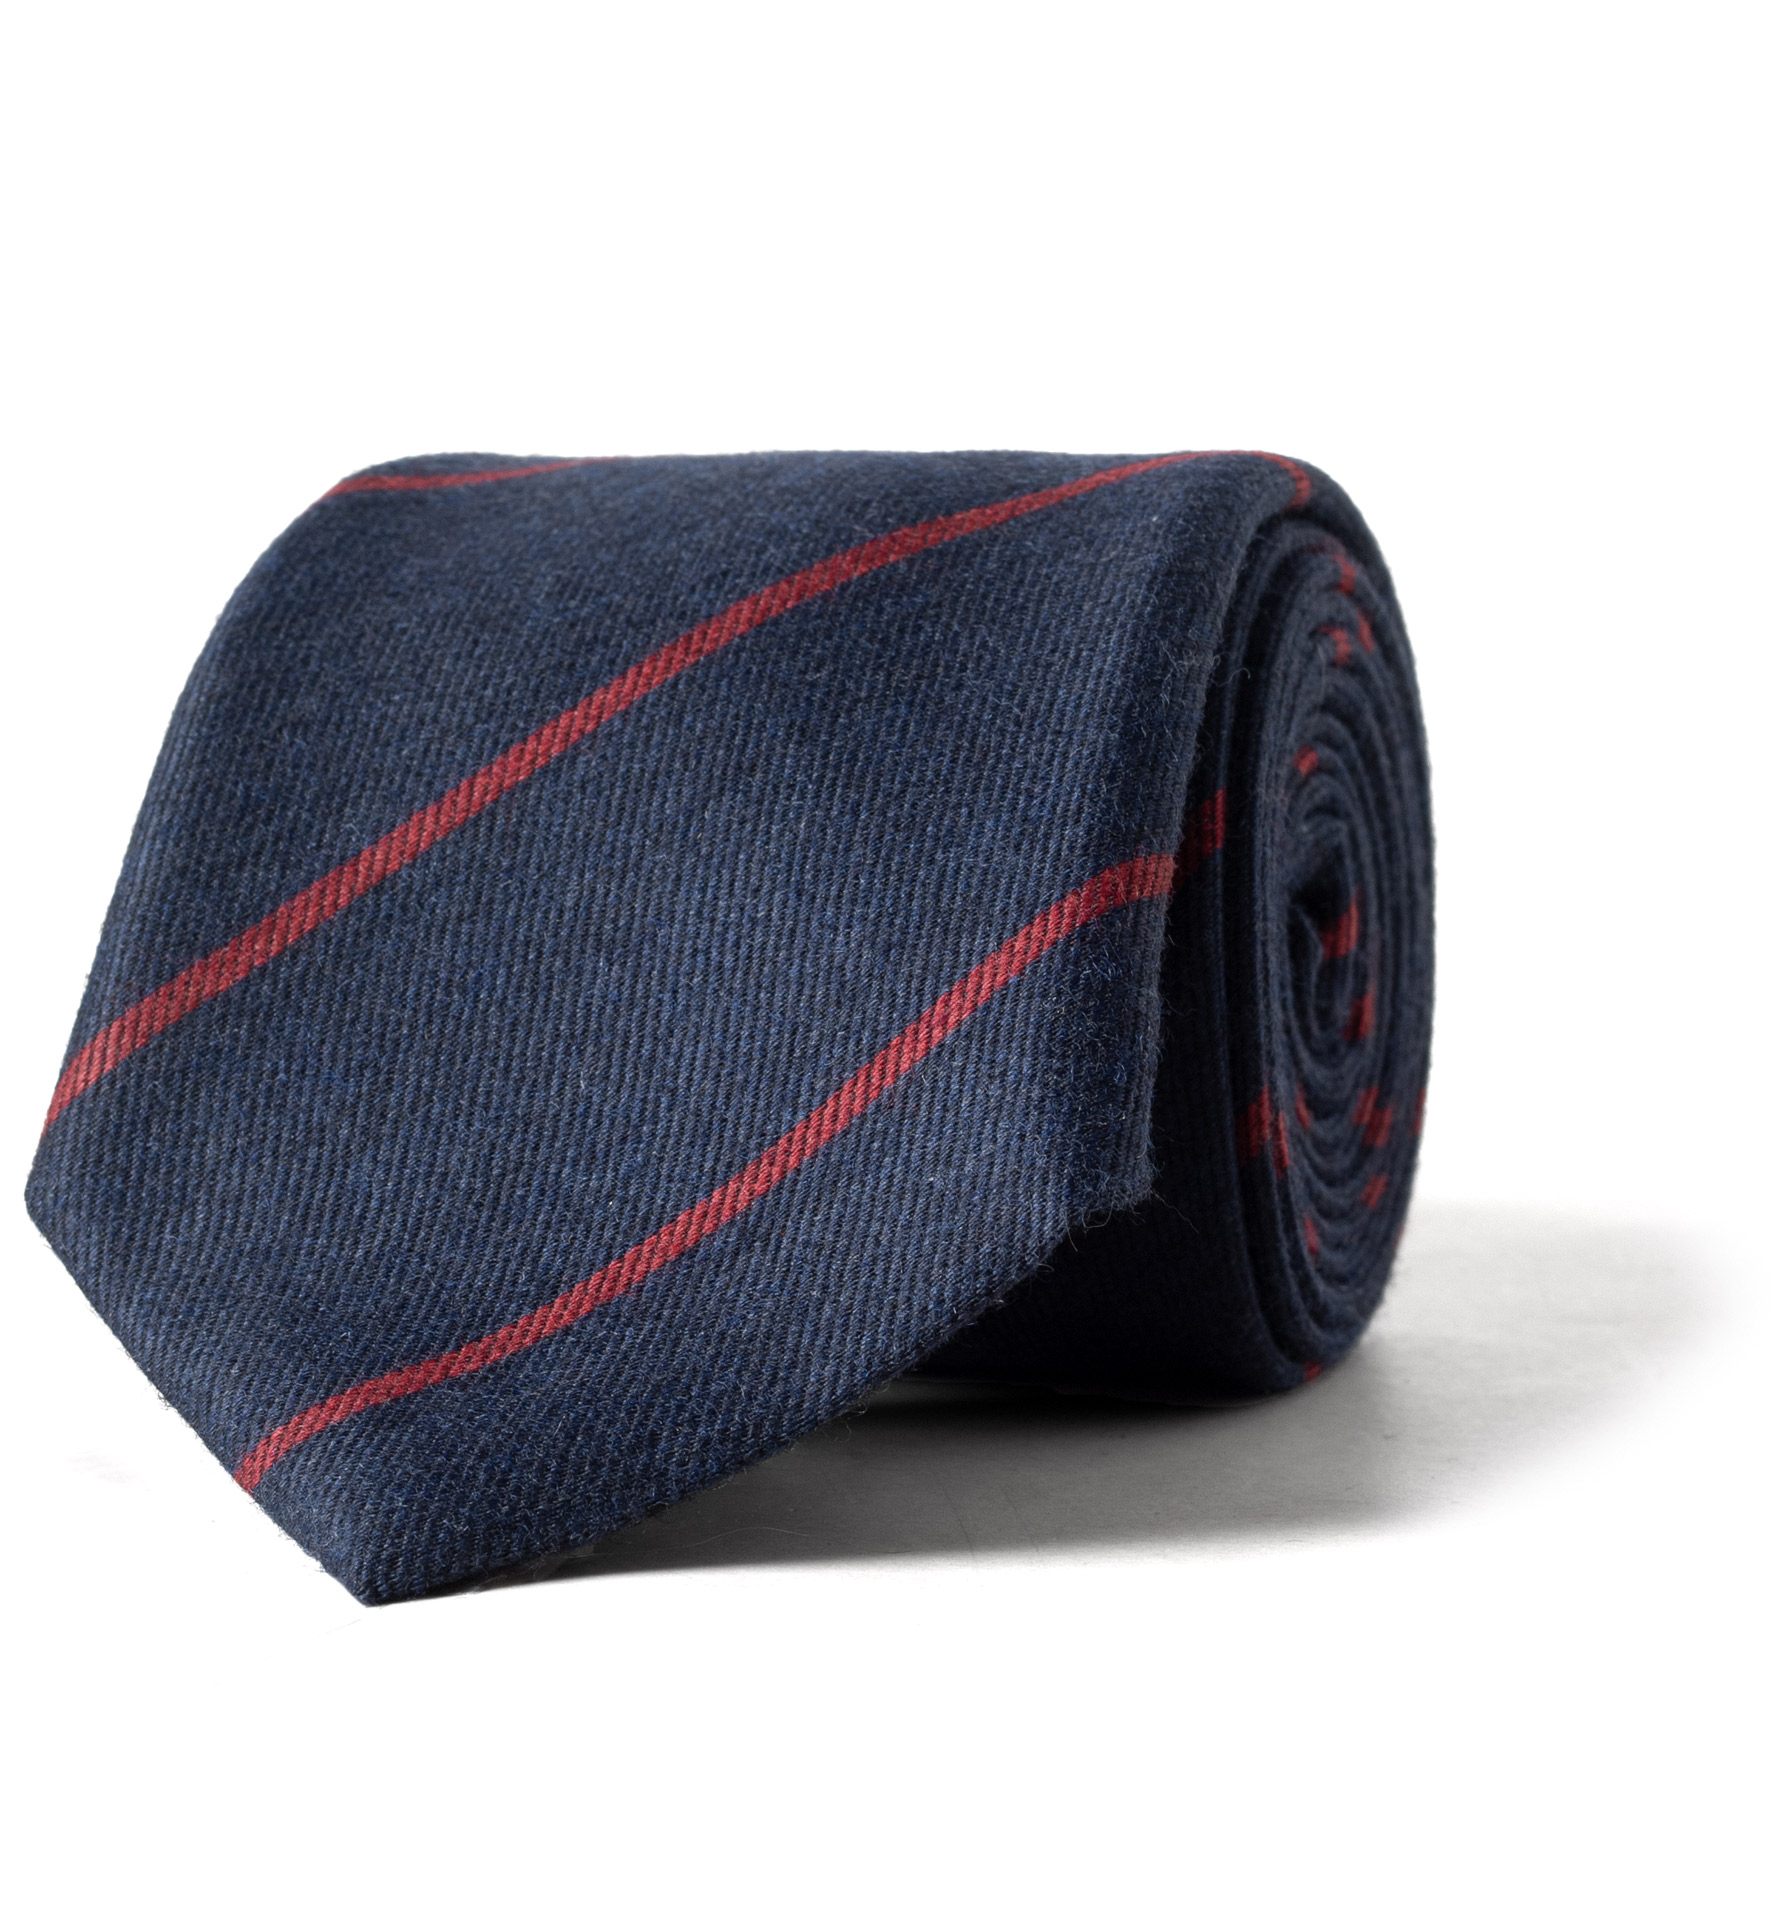 Zoom Image of Navy and Scarlet Striped Wool and Silk Tie